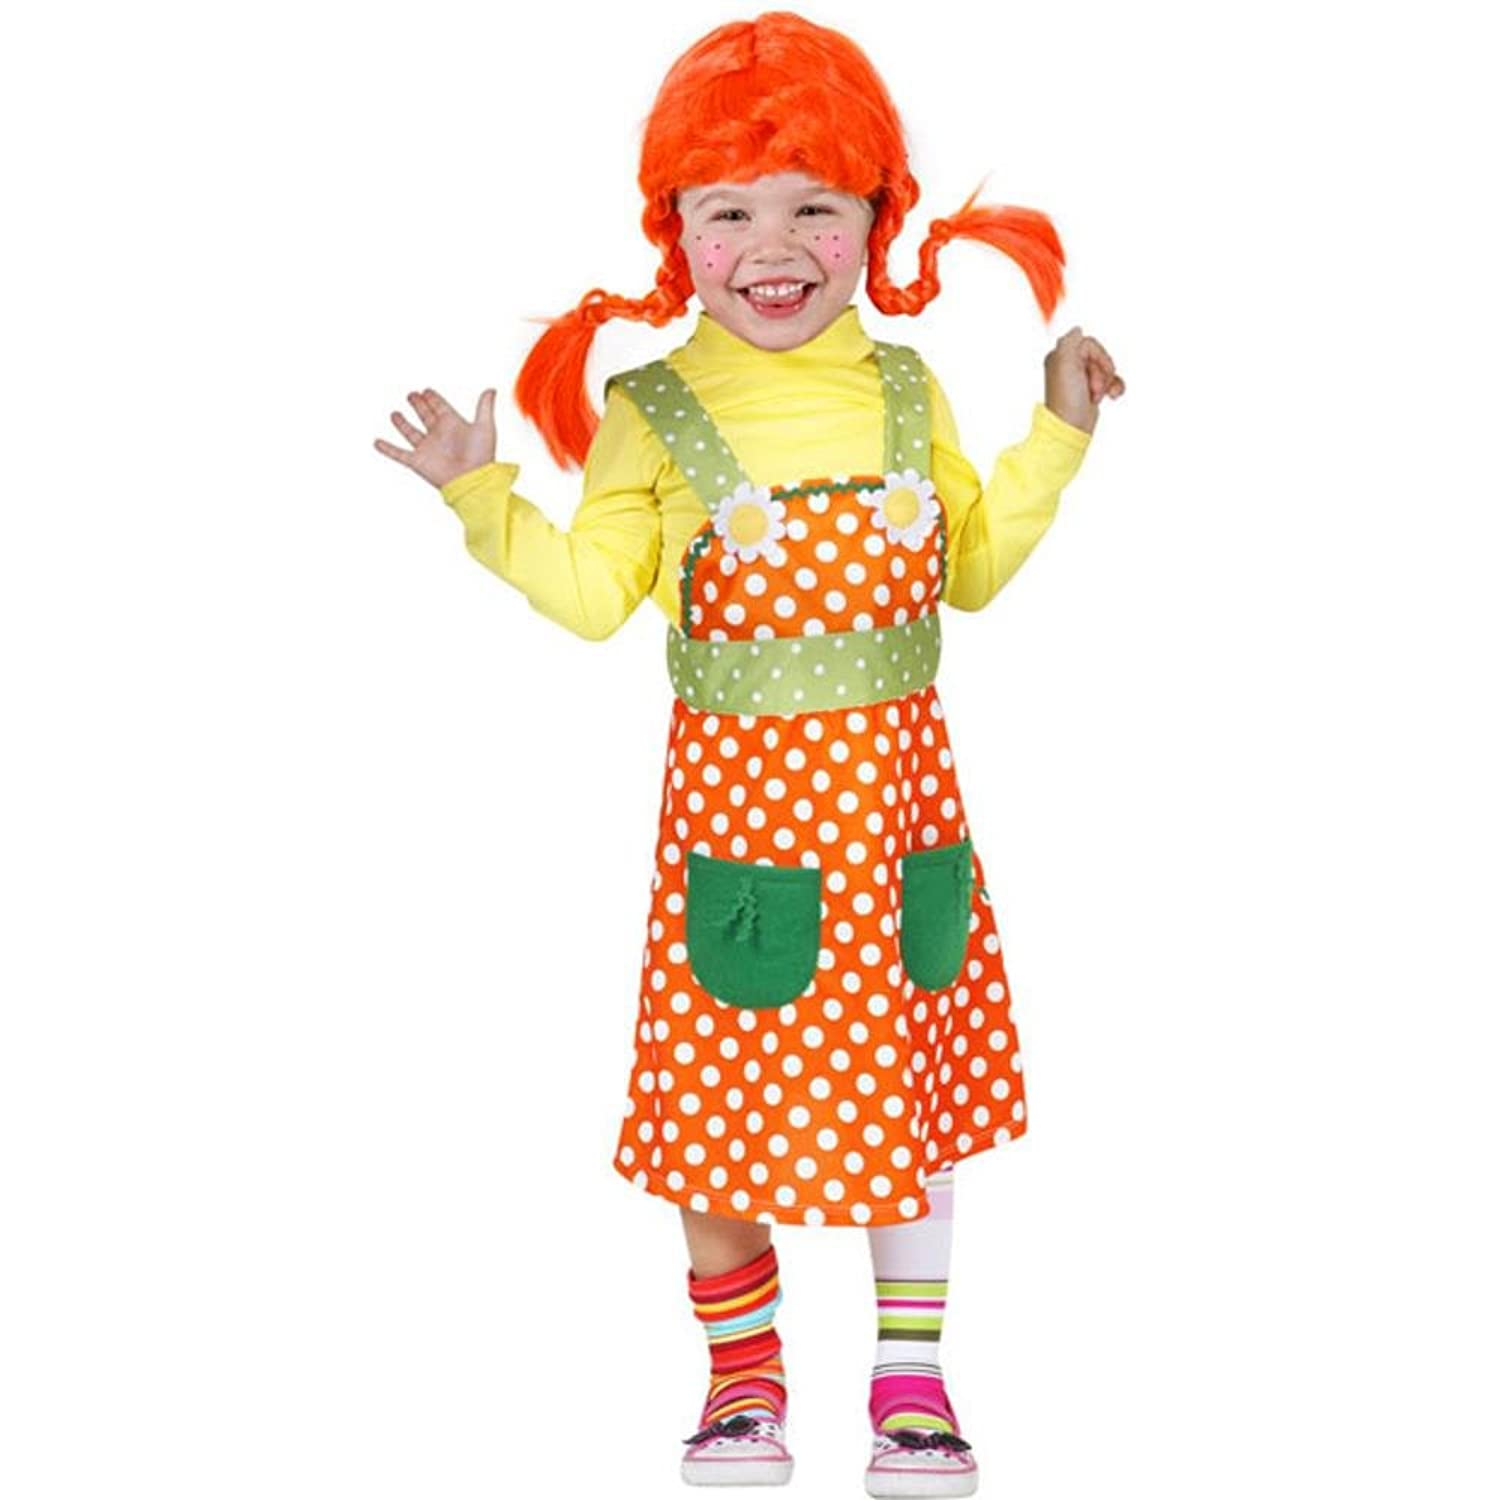 amazoncom toddler peppy swedish girl costume size2t 4t clothing - 4t Halloween Costumes Girls